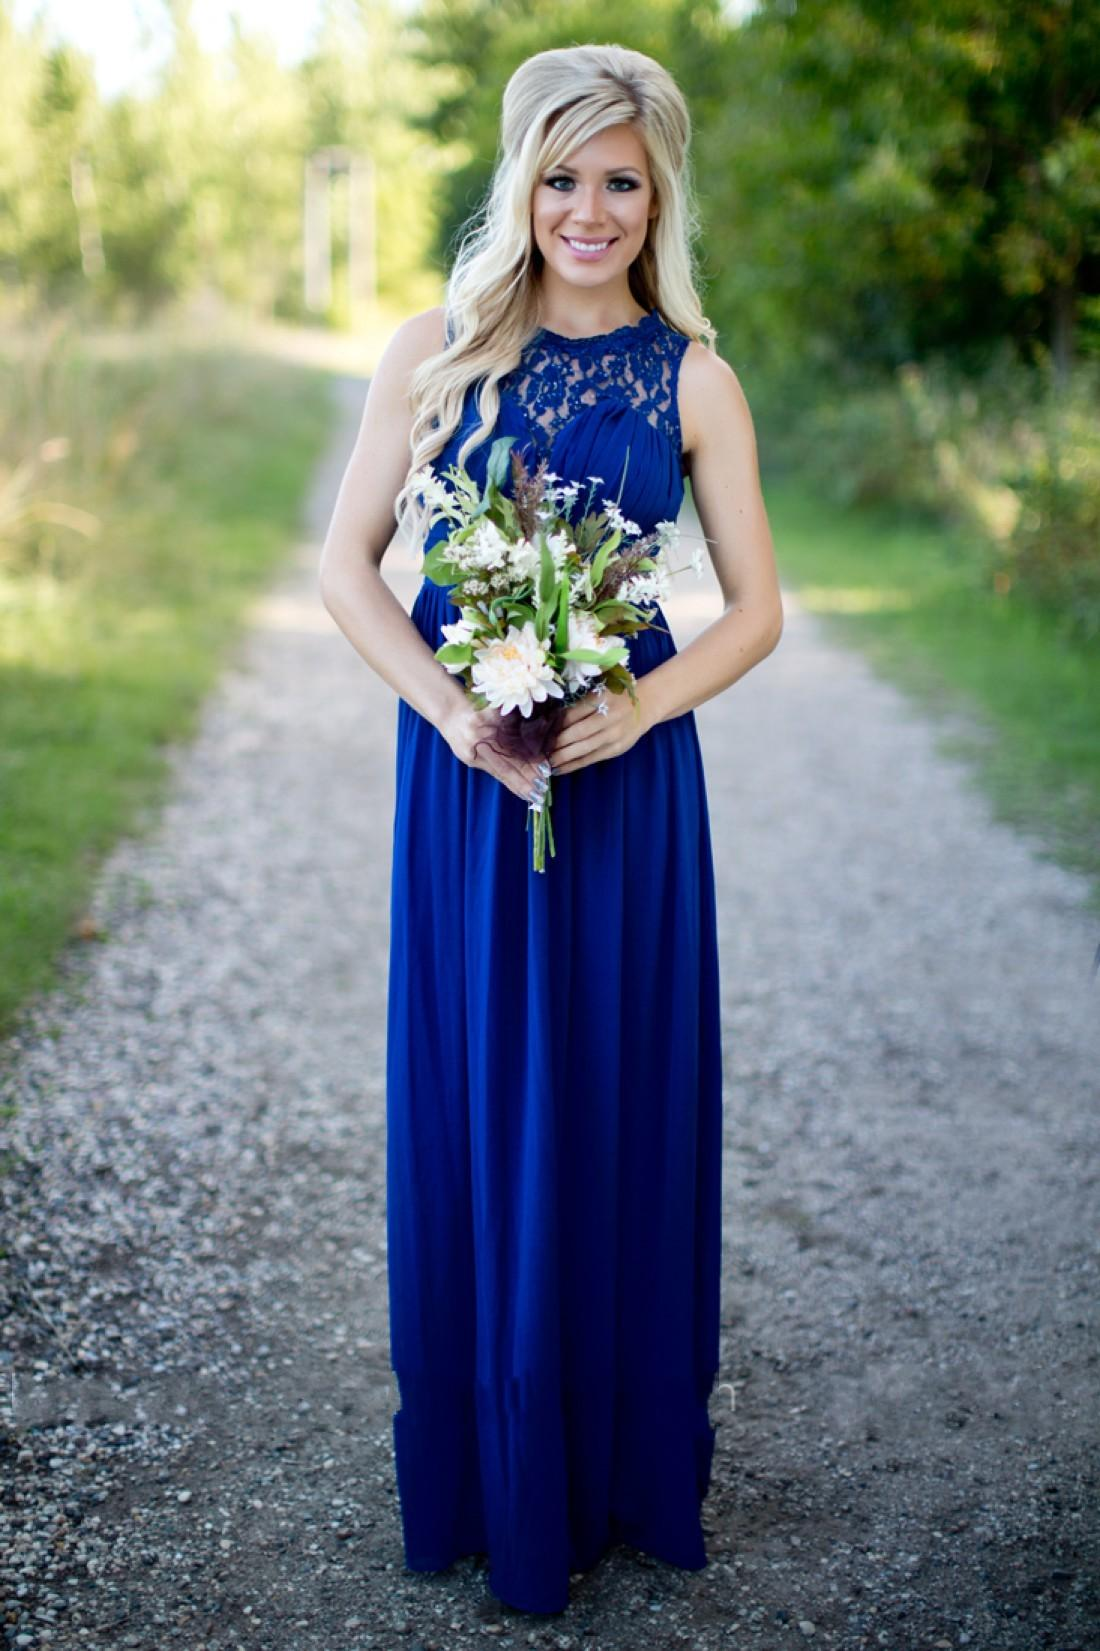 2020 Country Royal Blue Bridesmaid Dresses For Weddings Chiffon Lace  Illusion Jewel Neck Beads Plus Size Party Maid Of Honor Gowns Under 100  Rose ...